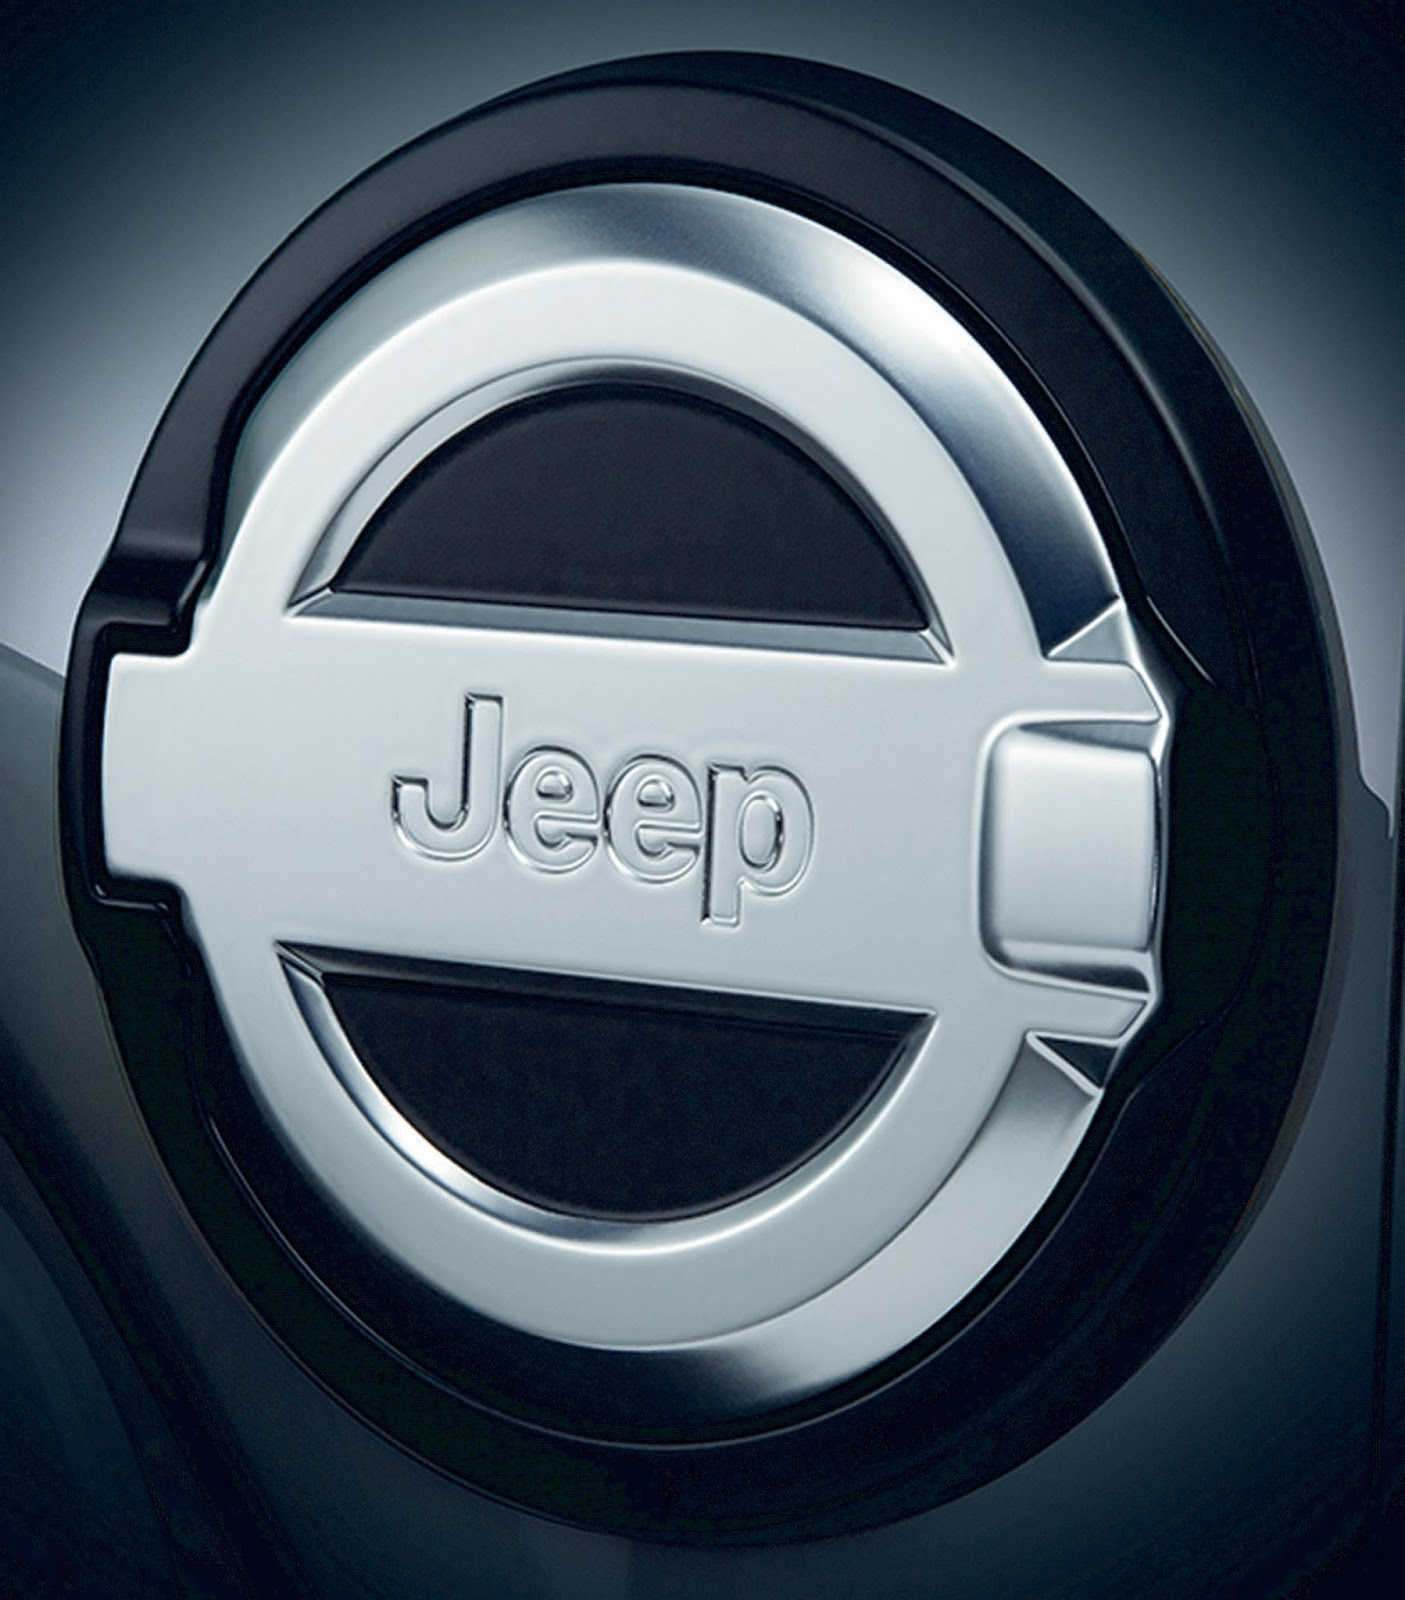 Mopar fuel doors for the all-new Jeep® Wrangler are available in brushed aluminum (pictured) as well as satin black finish, and incorporate styling cues of the all-new Wrangler.